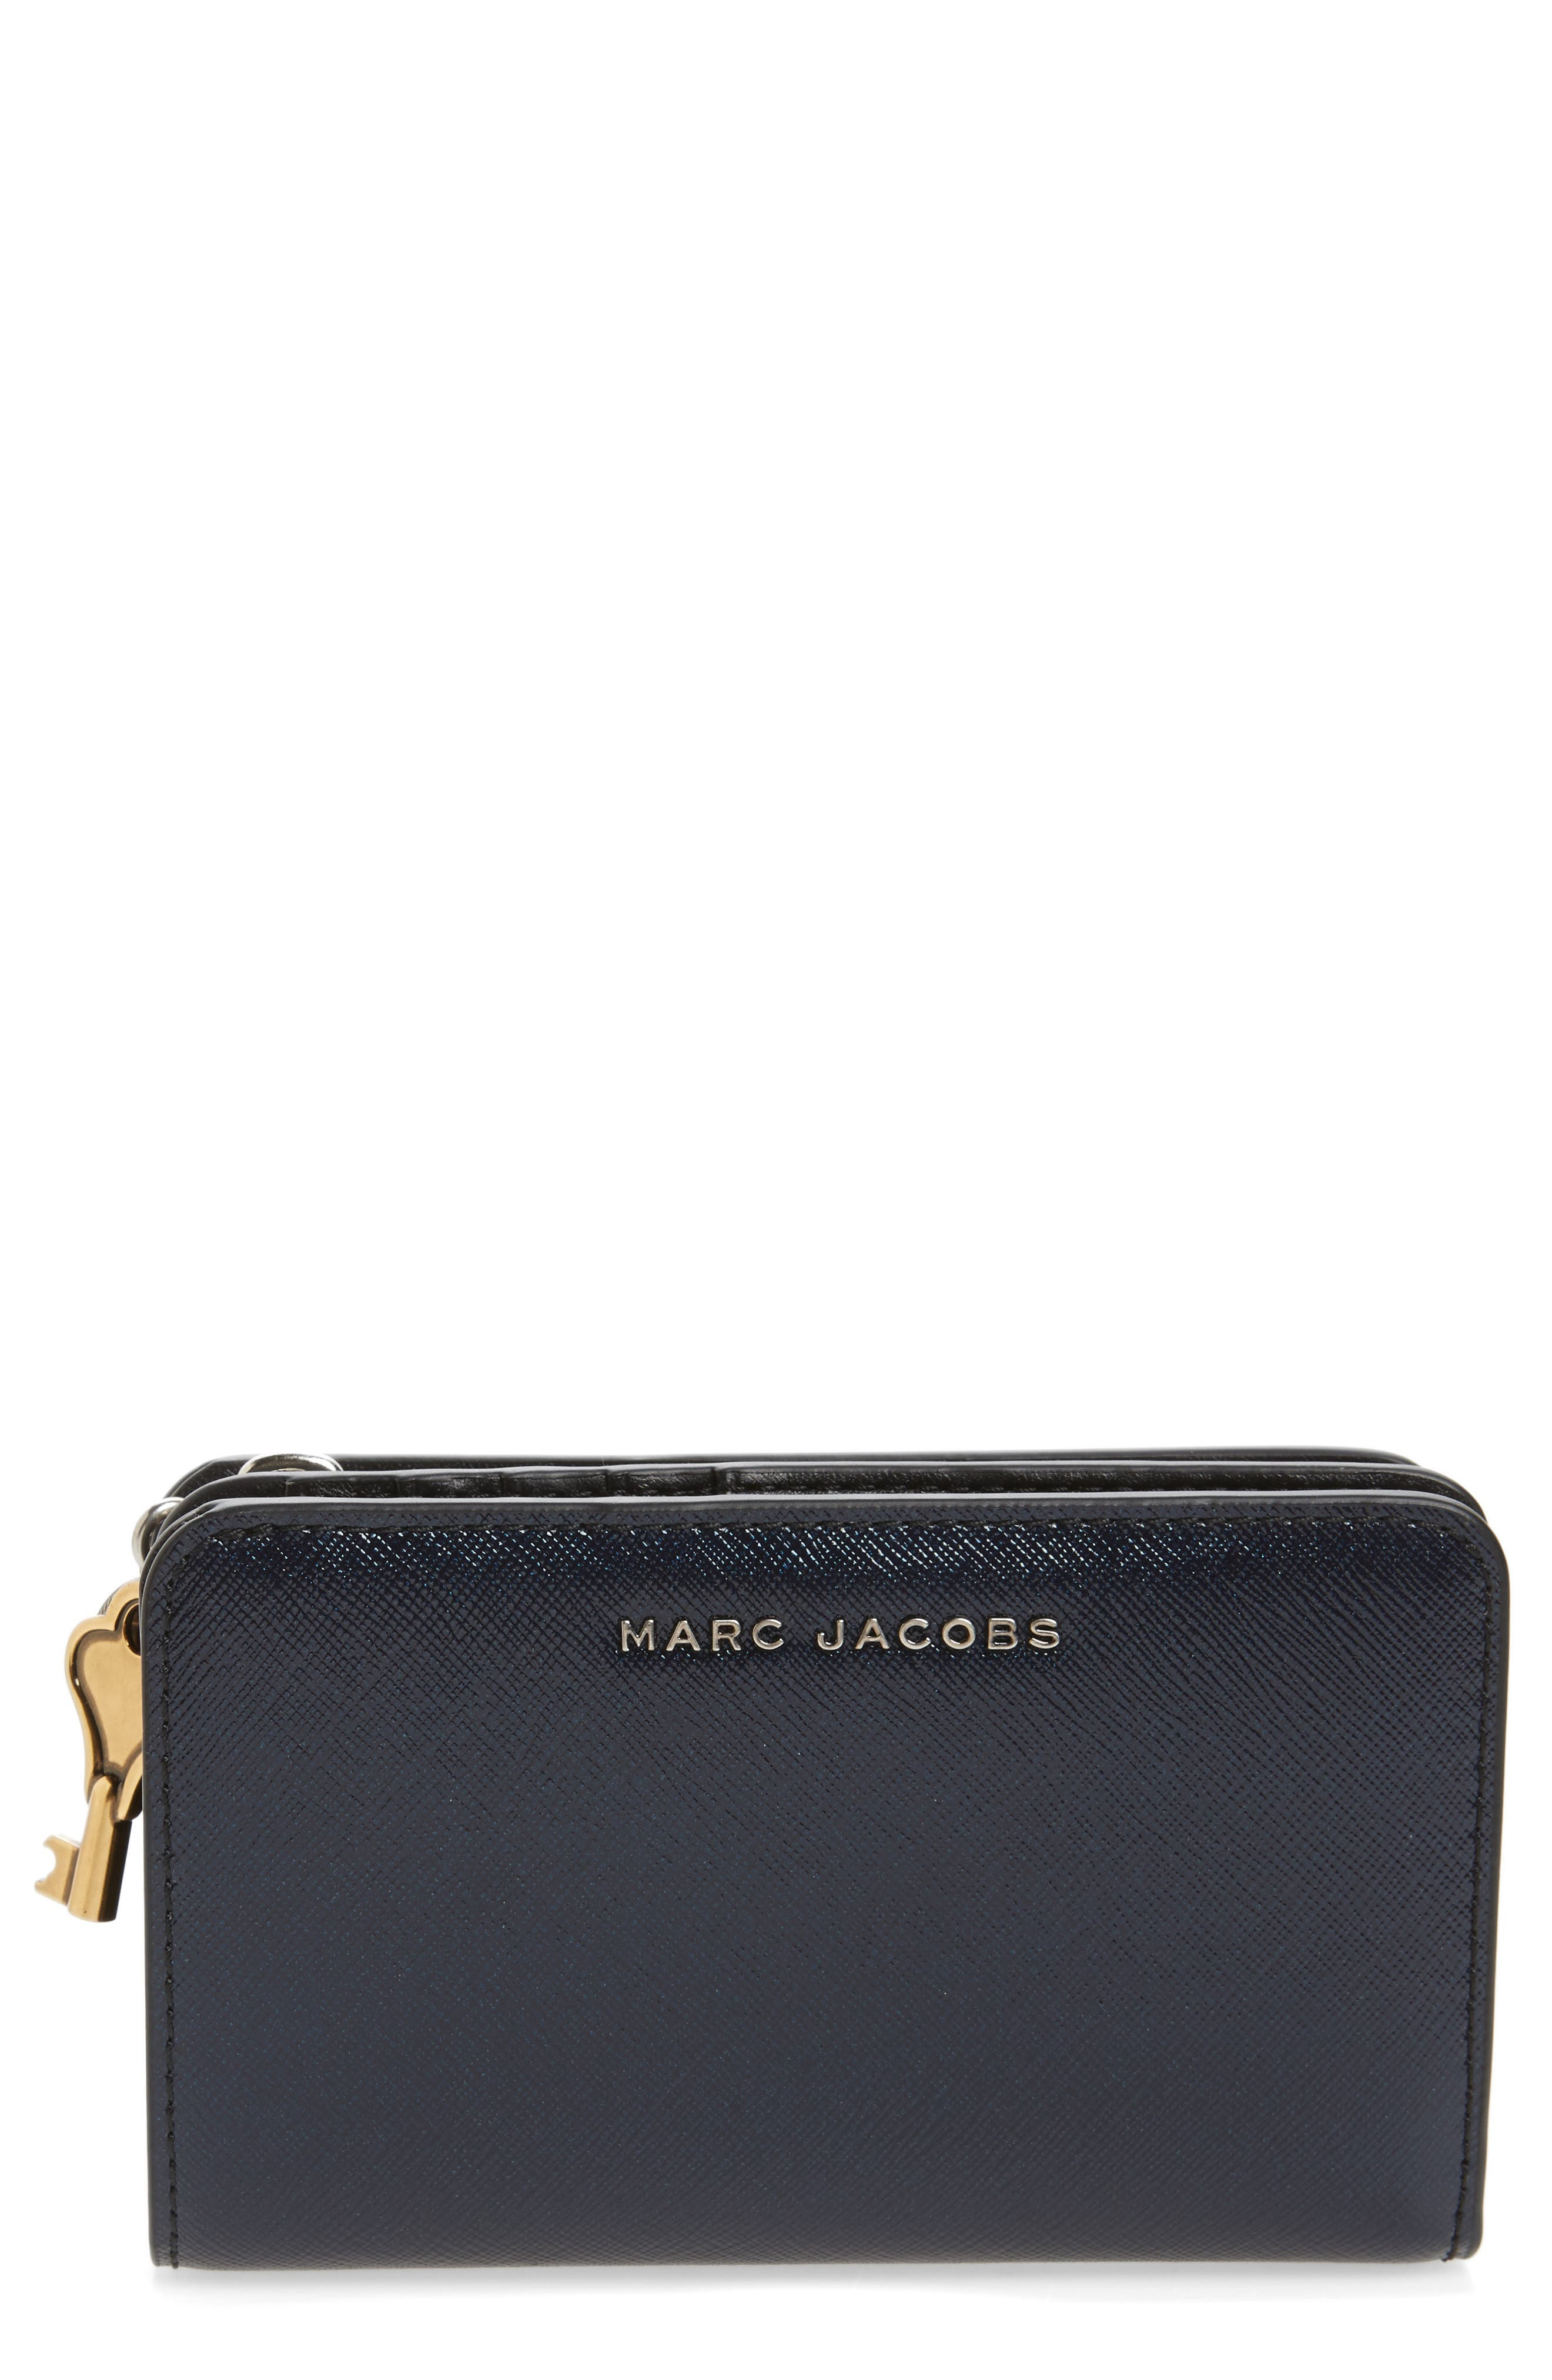 Alternate Image 1 Selected - MARC JACOBS Saffiano Leather Compact Wallet